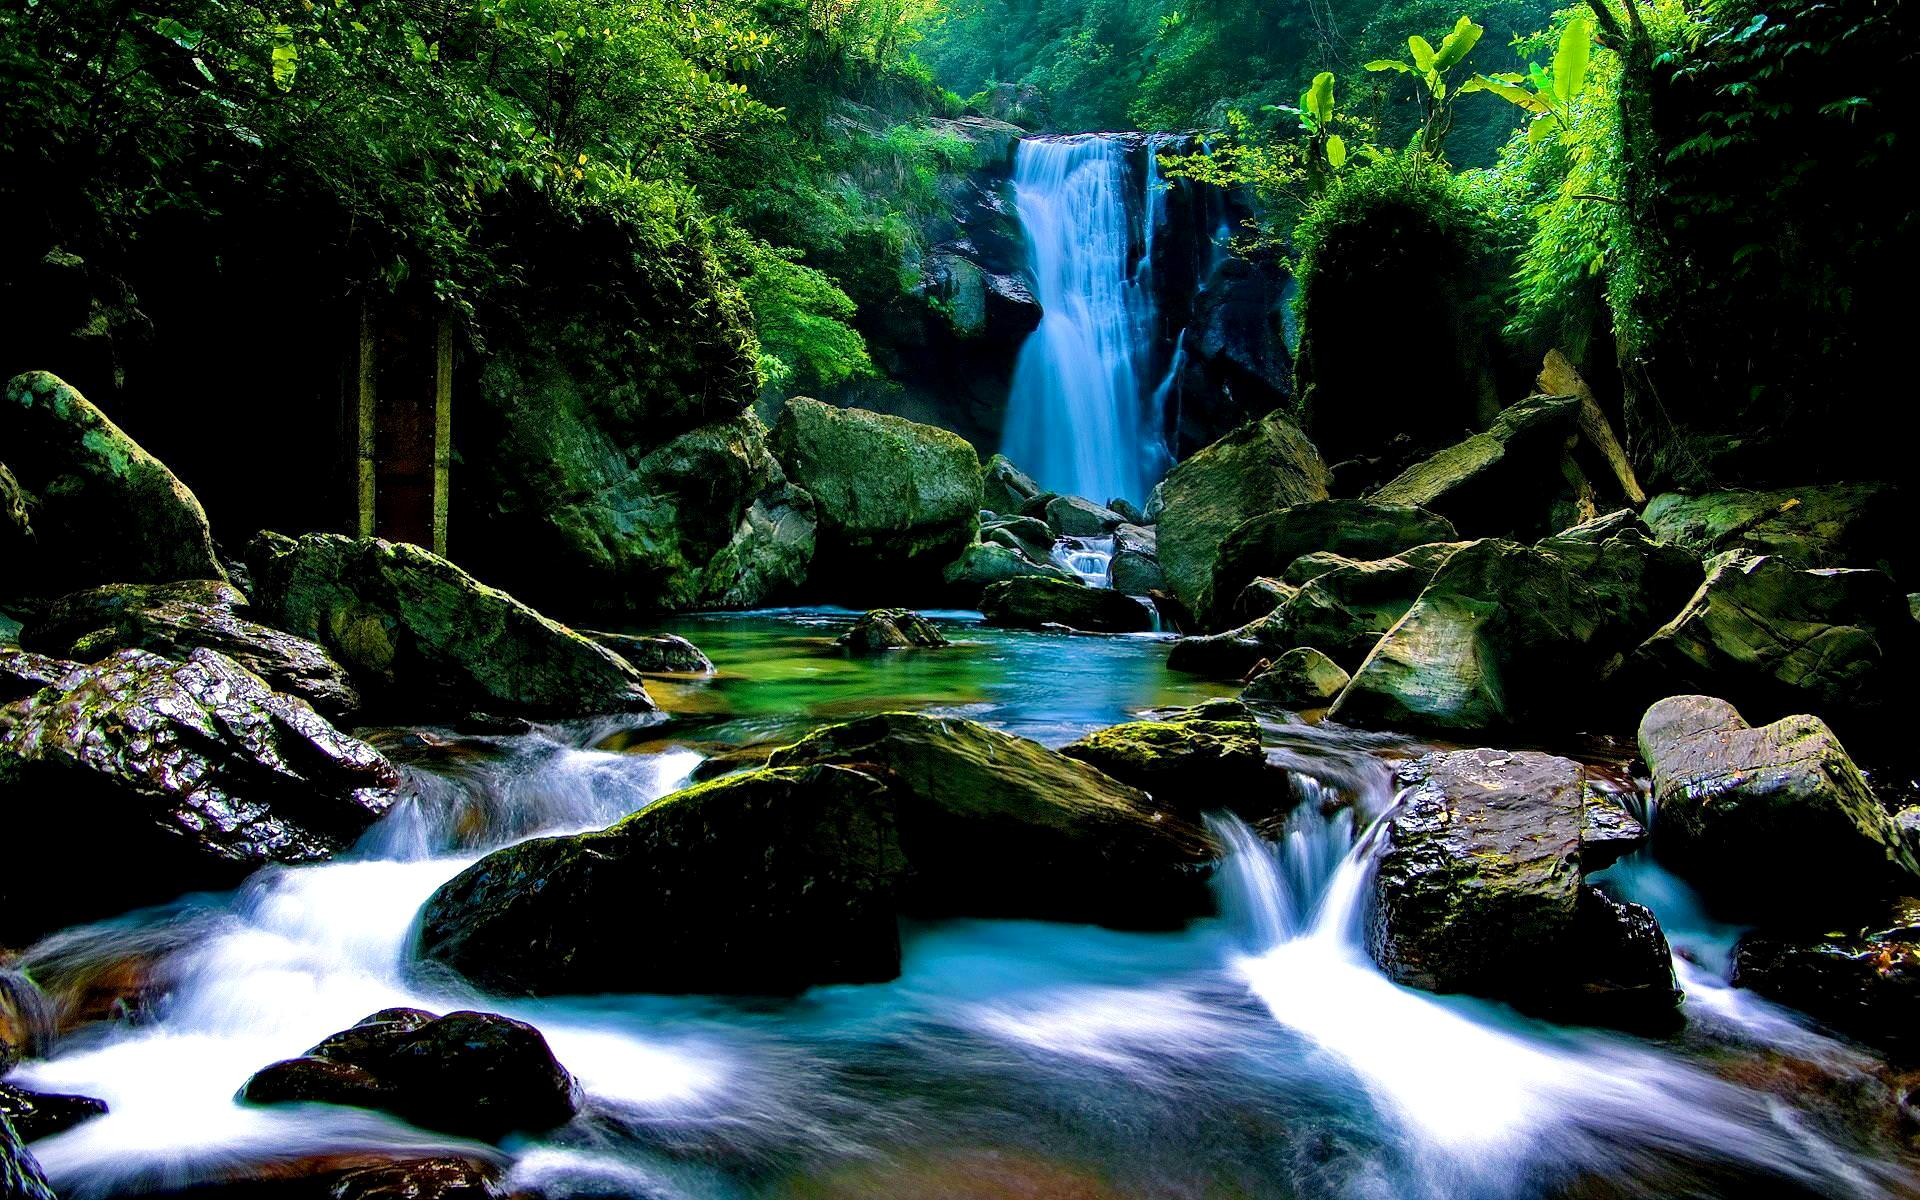 Download Forest Waterfall Wallpaper For Iphone 6 Wallpaper Forest Waterfall Background 1920x1200 Wallpaper Teahub Io